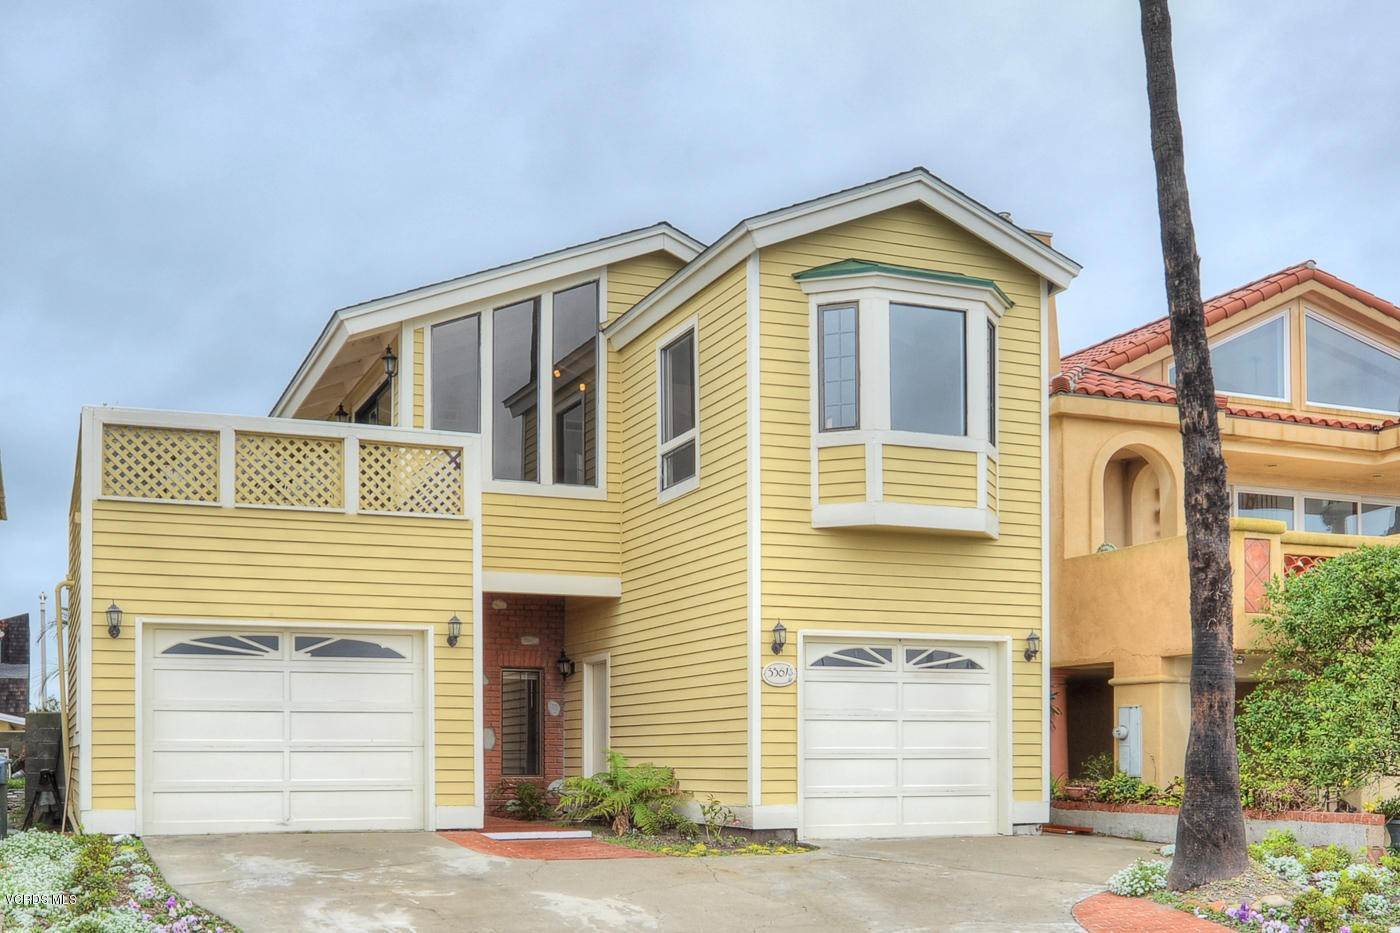 Single Family Homes for Sale at 3361 Harbor Boulevard Oxnard, California 93035 United States